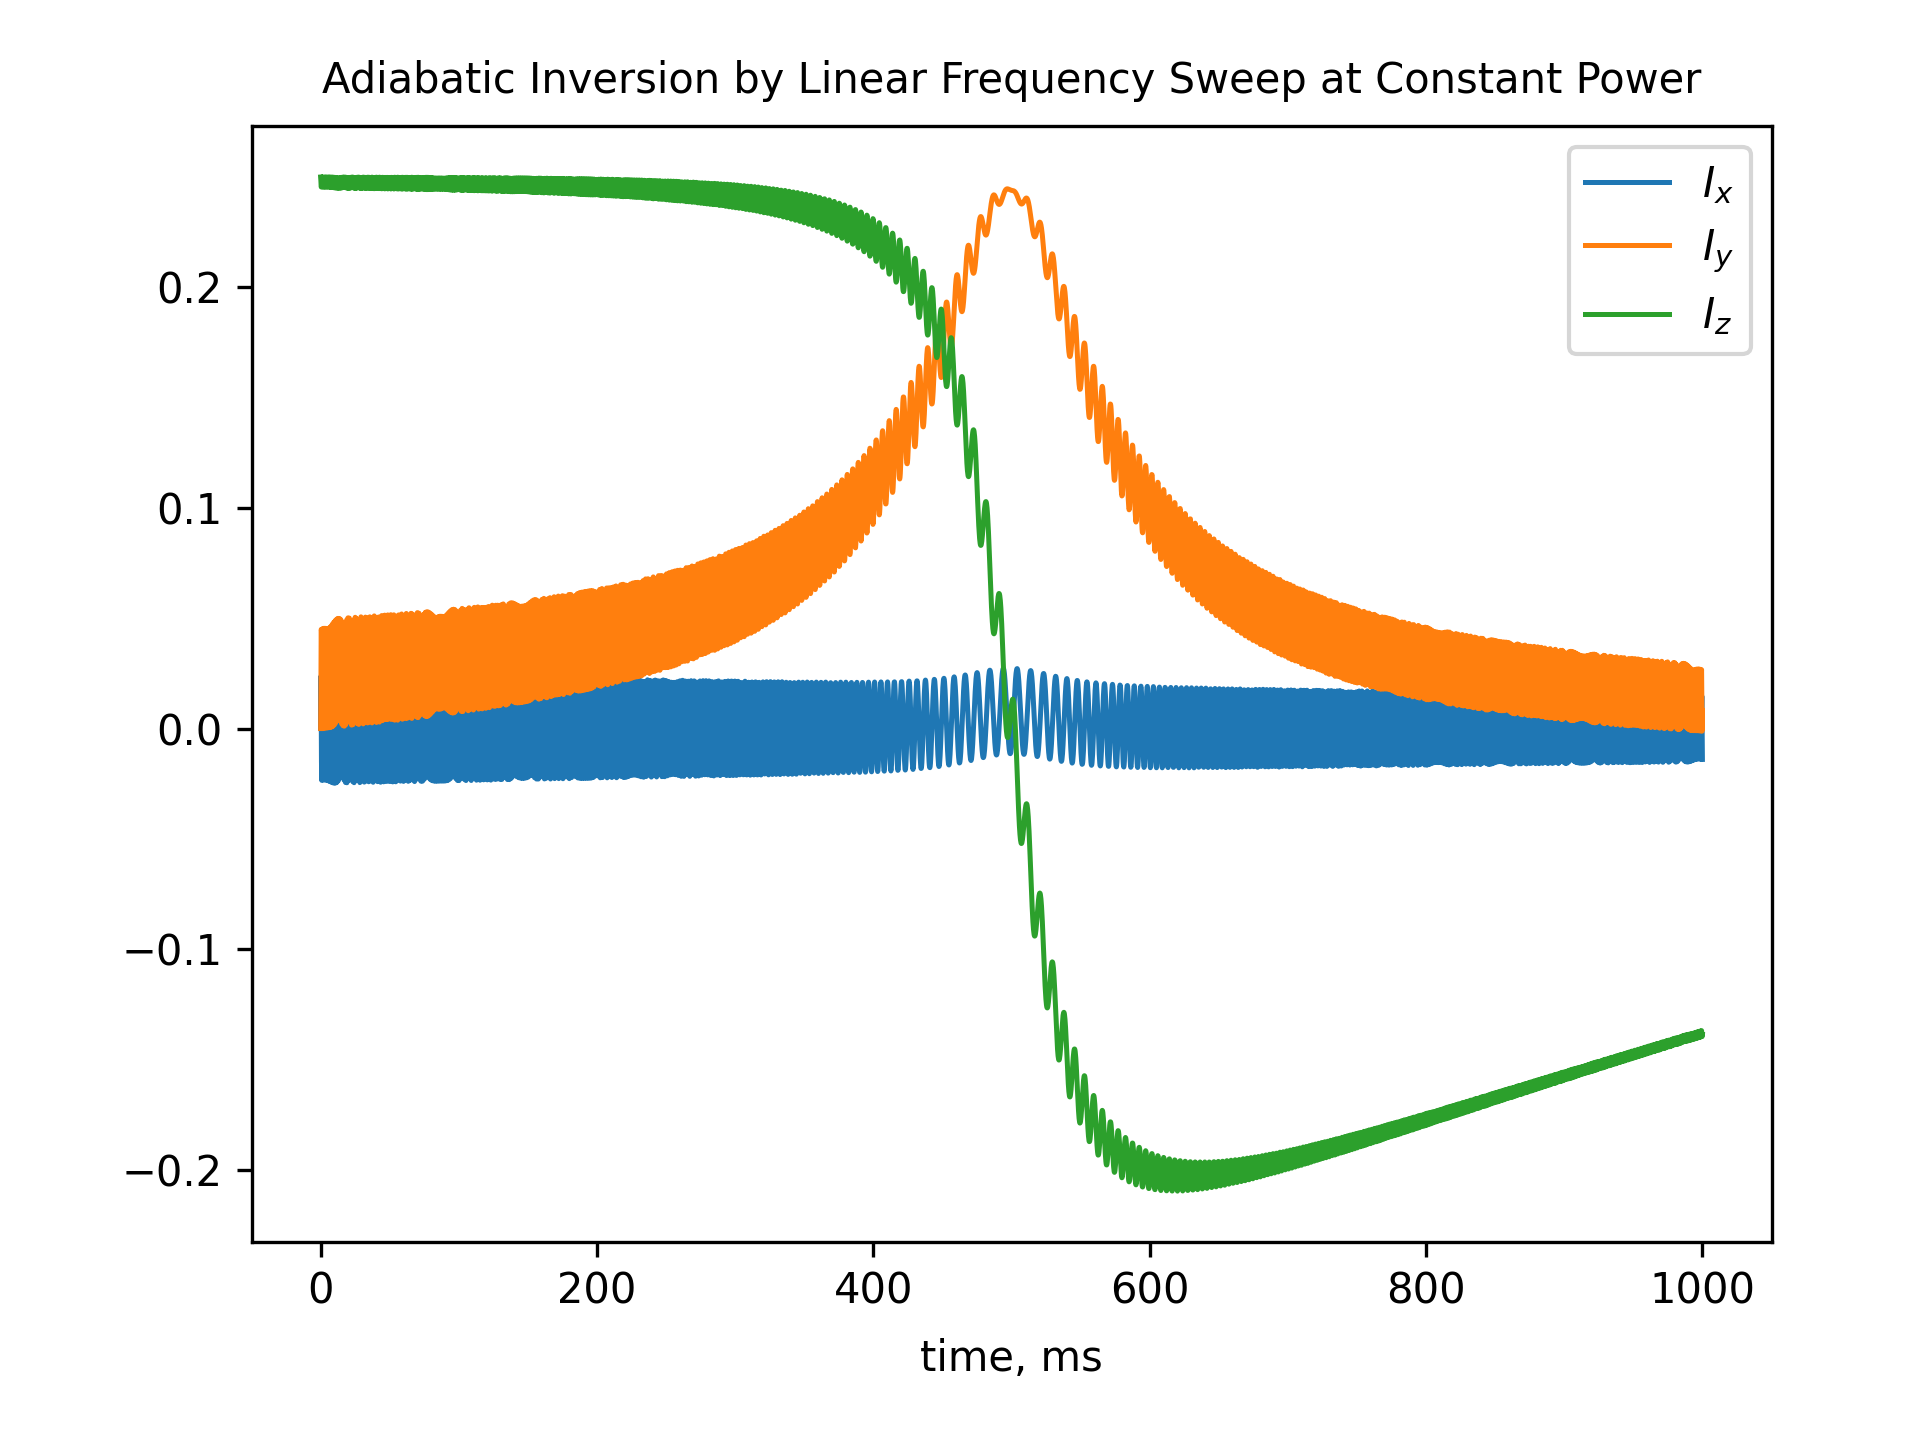 Adiabatic Inversion by Linear Frequency Sweep at Constant Power